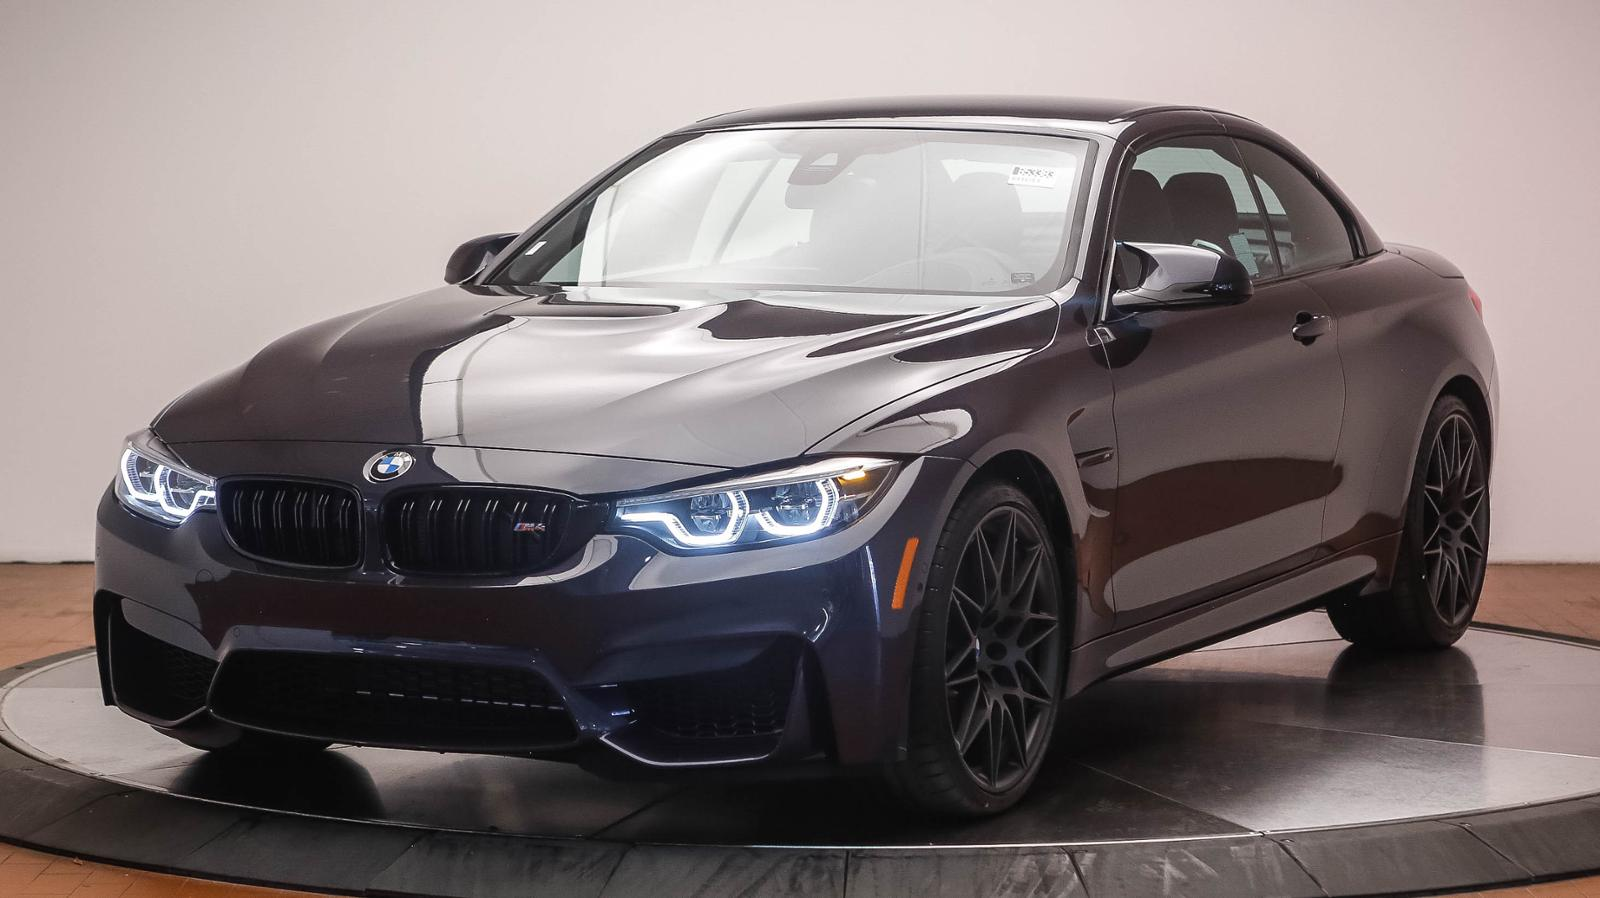 The History And Evolution Of The Bmw M4